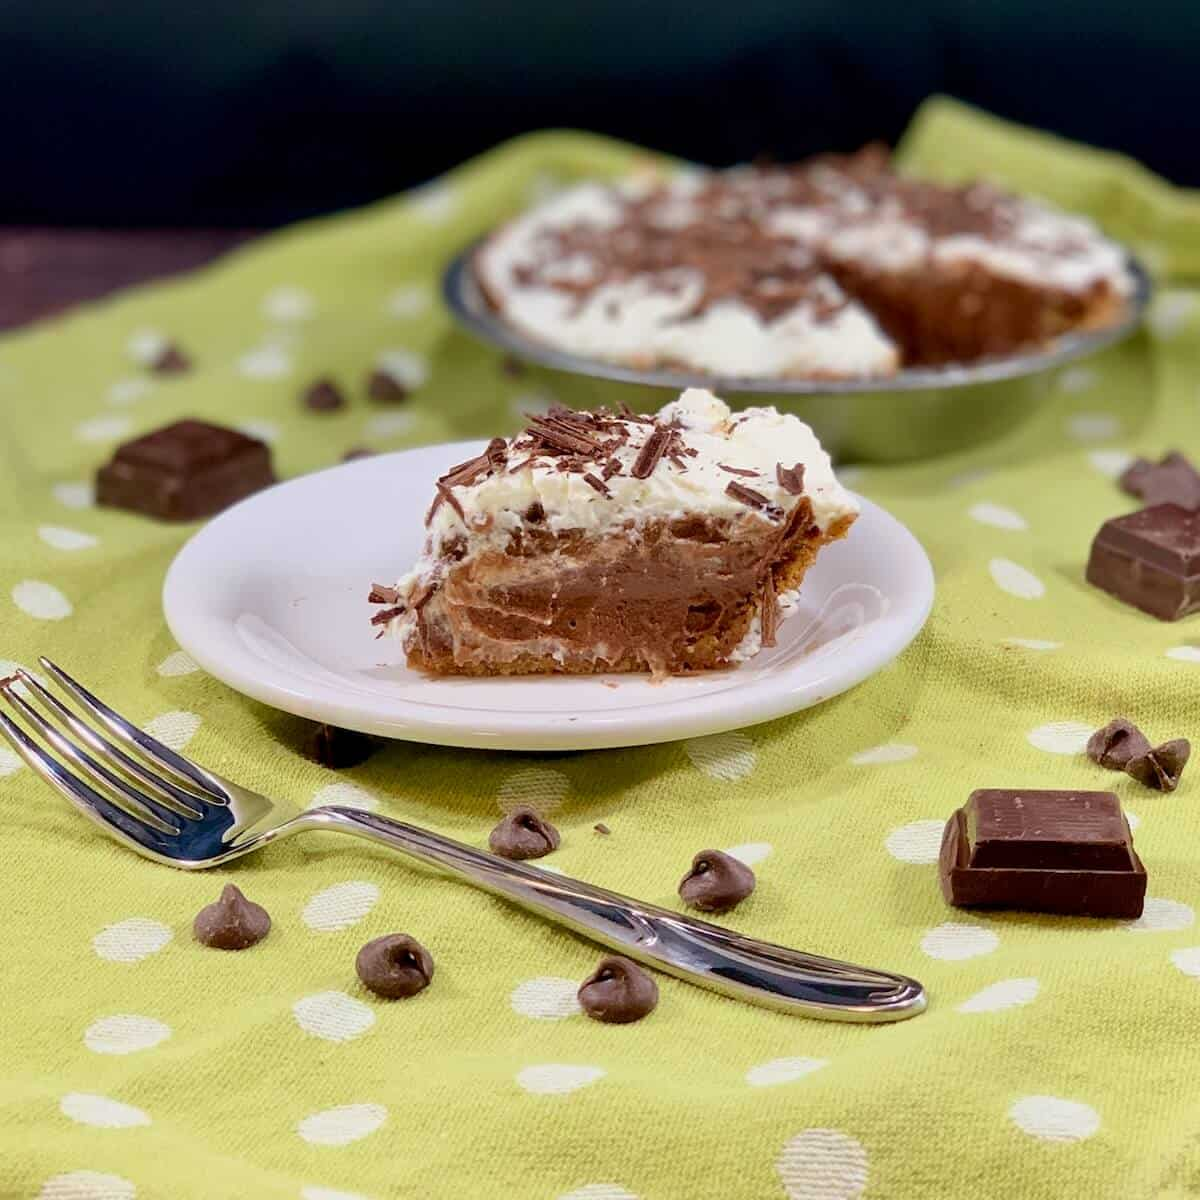 Chocolate Cream Pie slice on a white plate with fork & chocolate on a green polka dot towel.